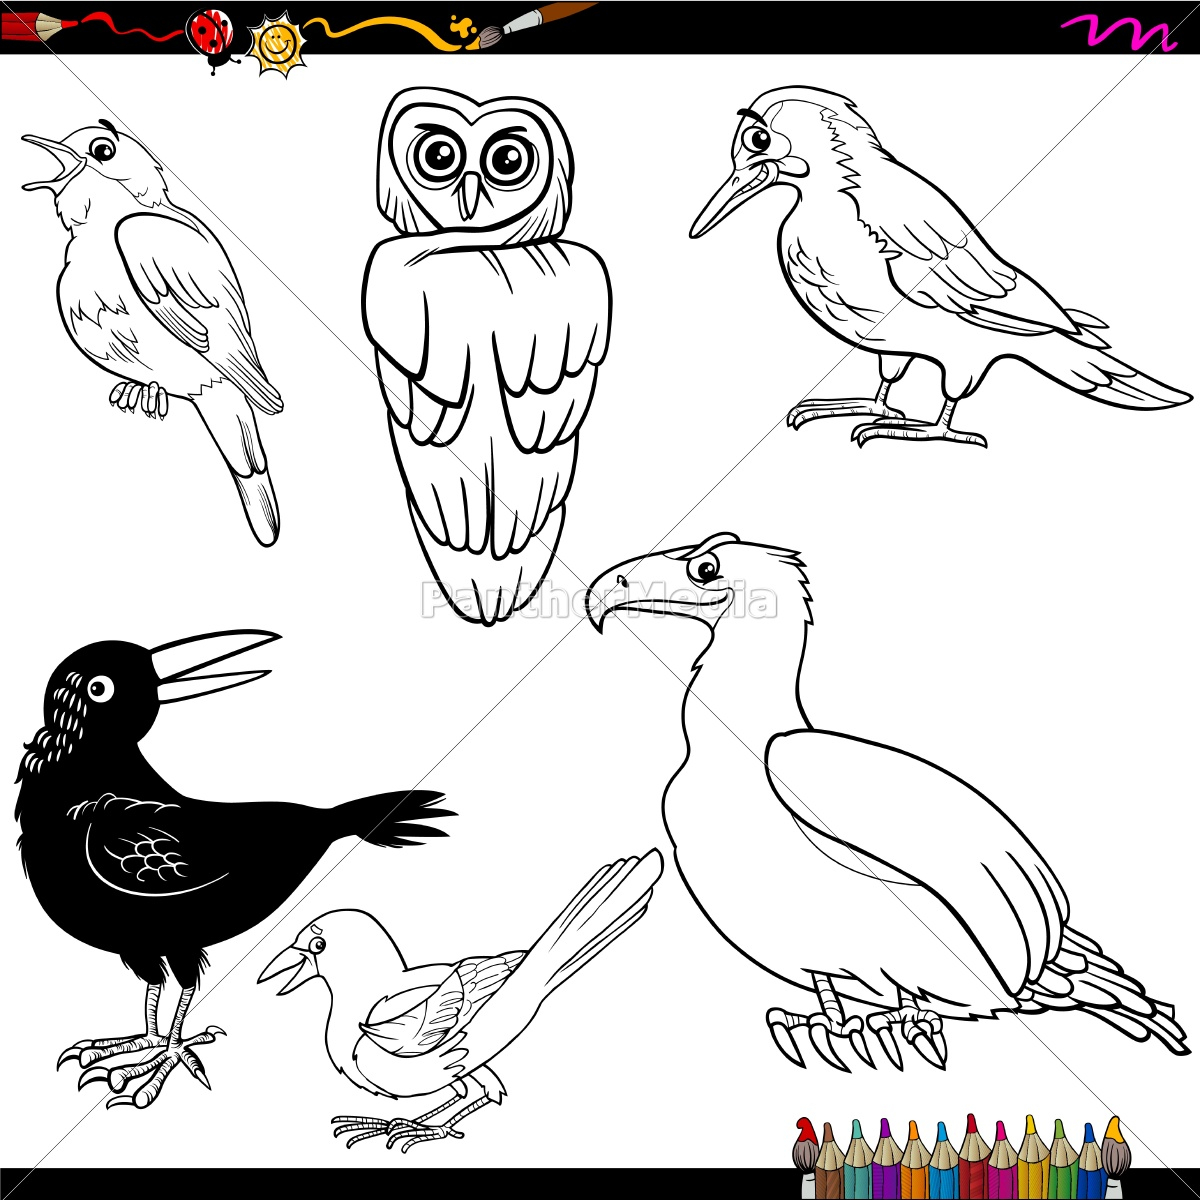 Aves Cartoon Pagina Para Colorir Stockphoto 14352501 Banco